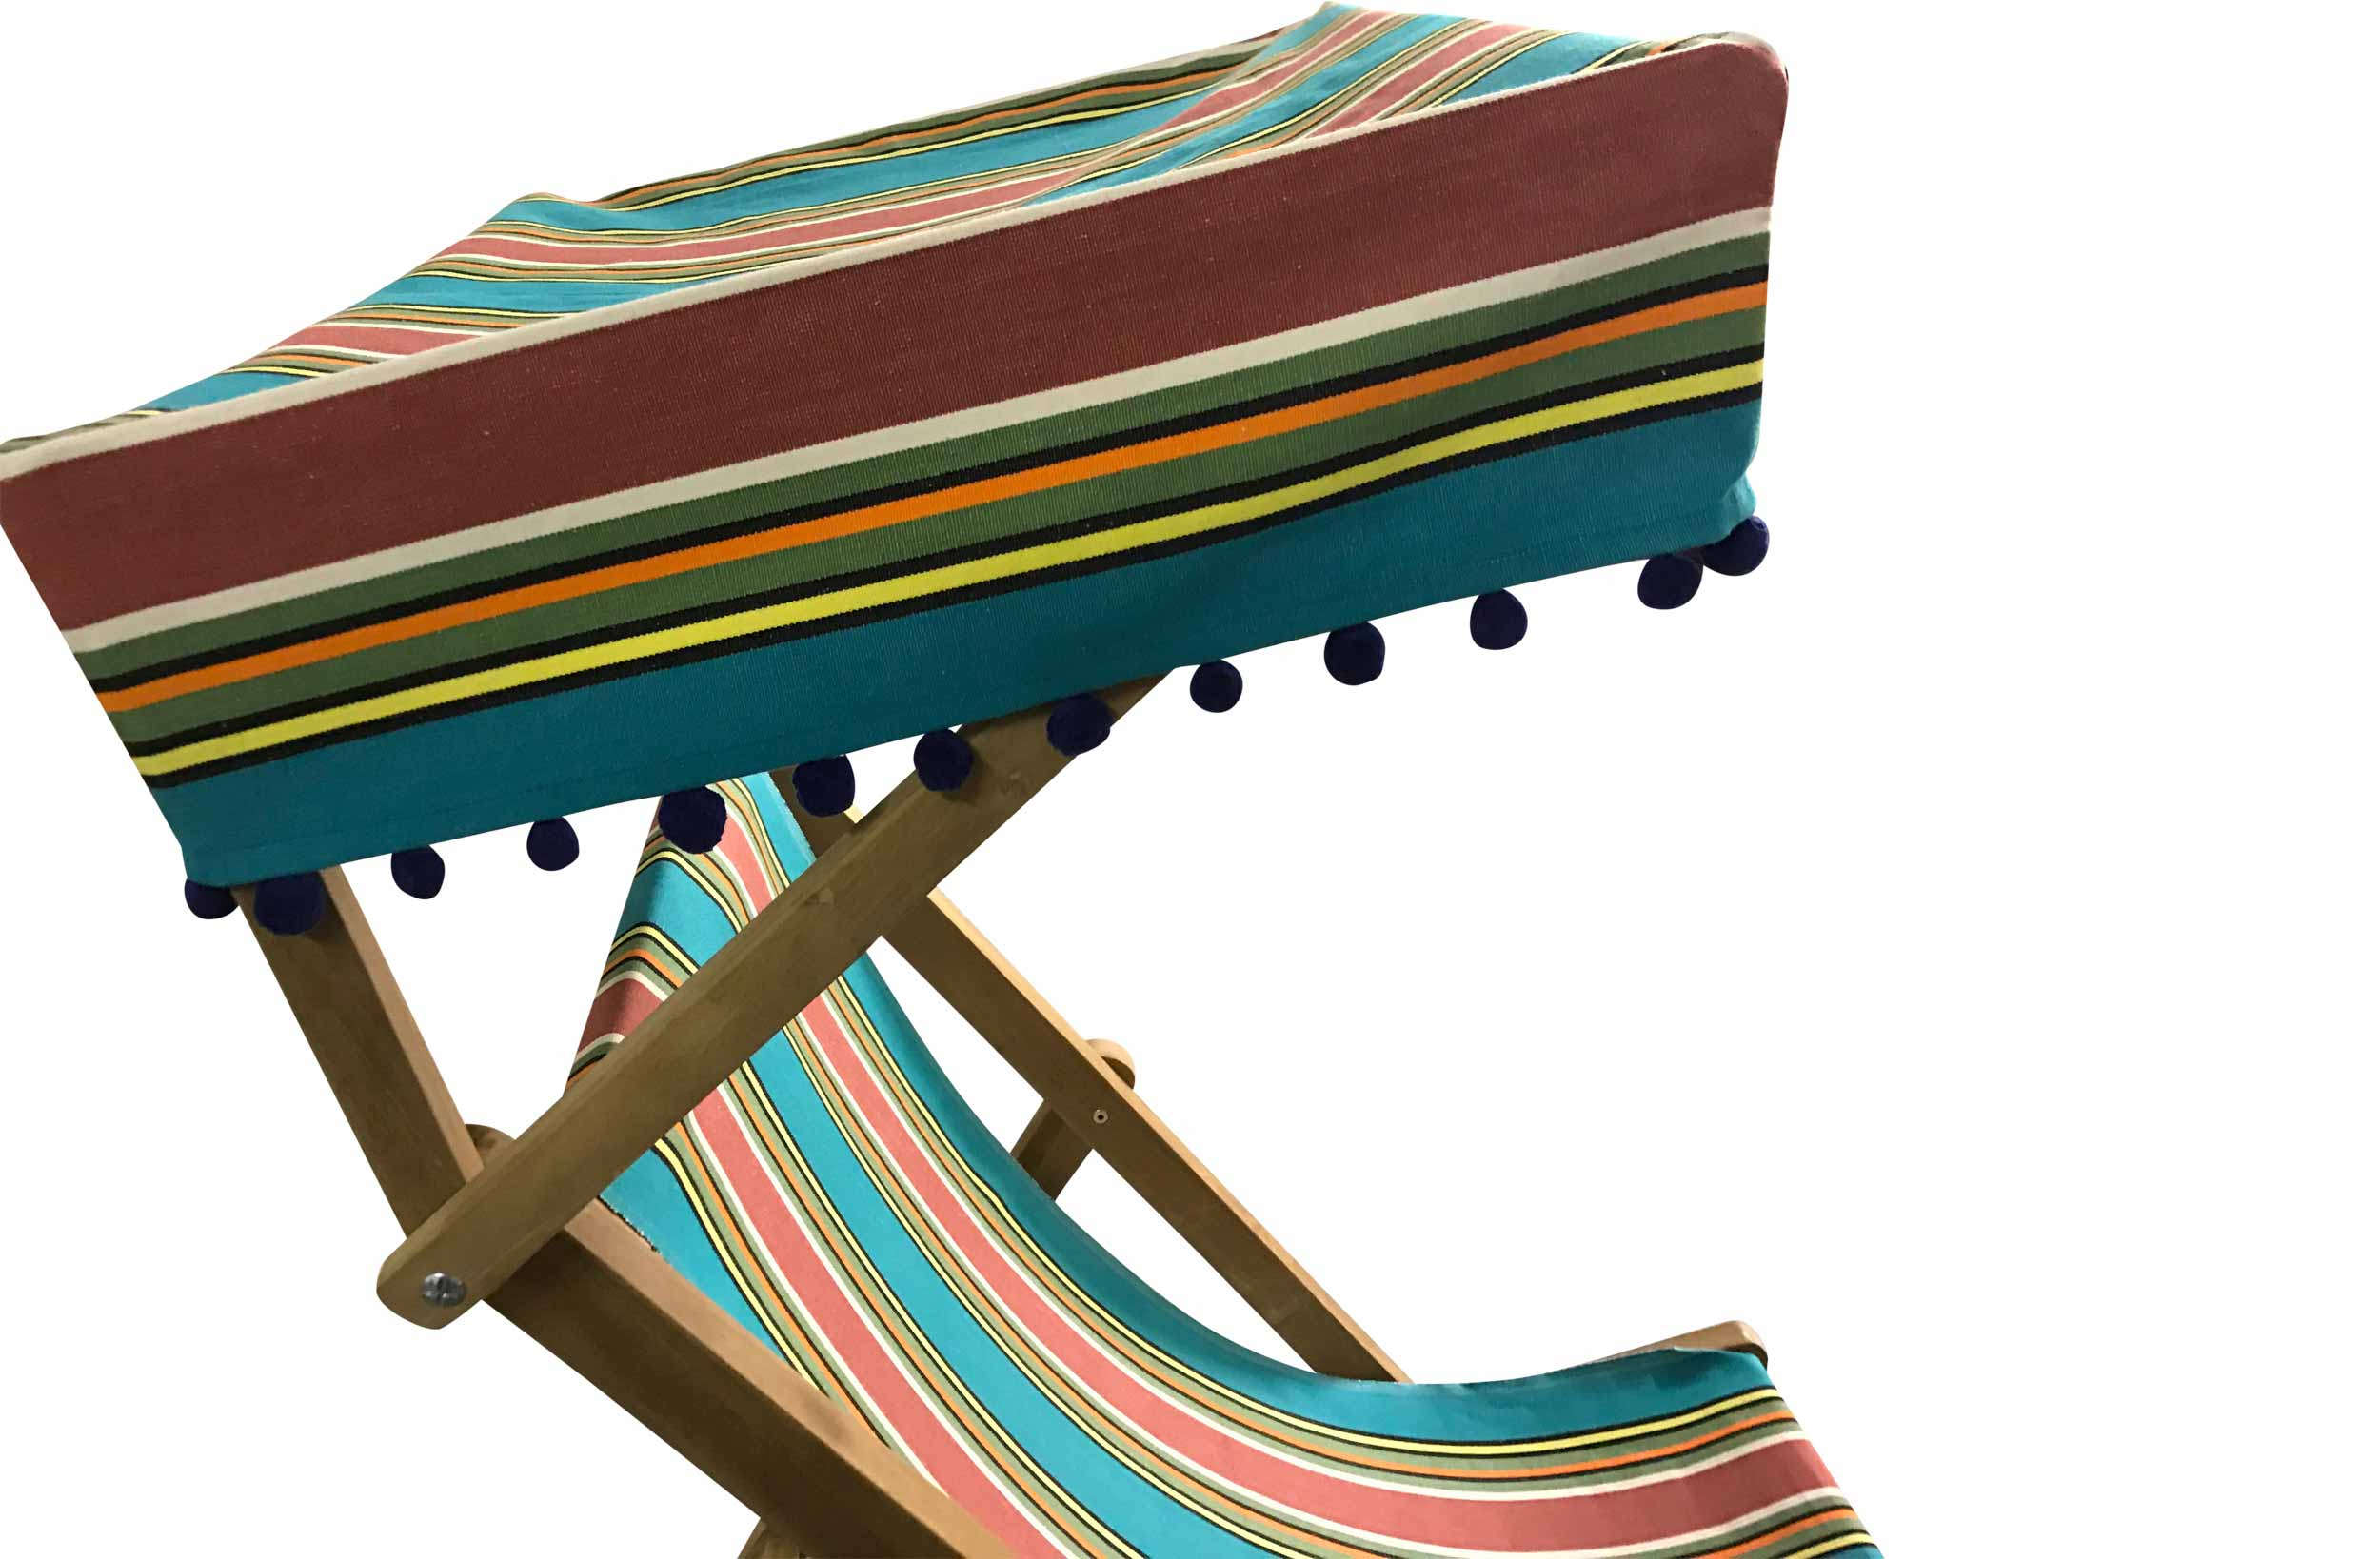 turquoise, terracotta, green - Edwardian Deckchairs with Canopy and Footstool